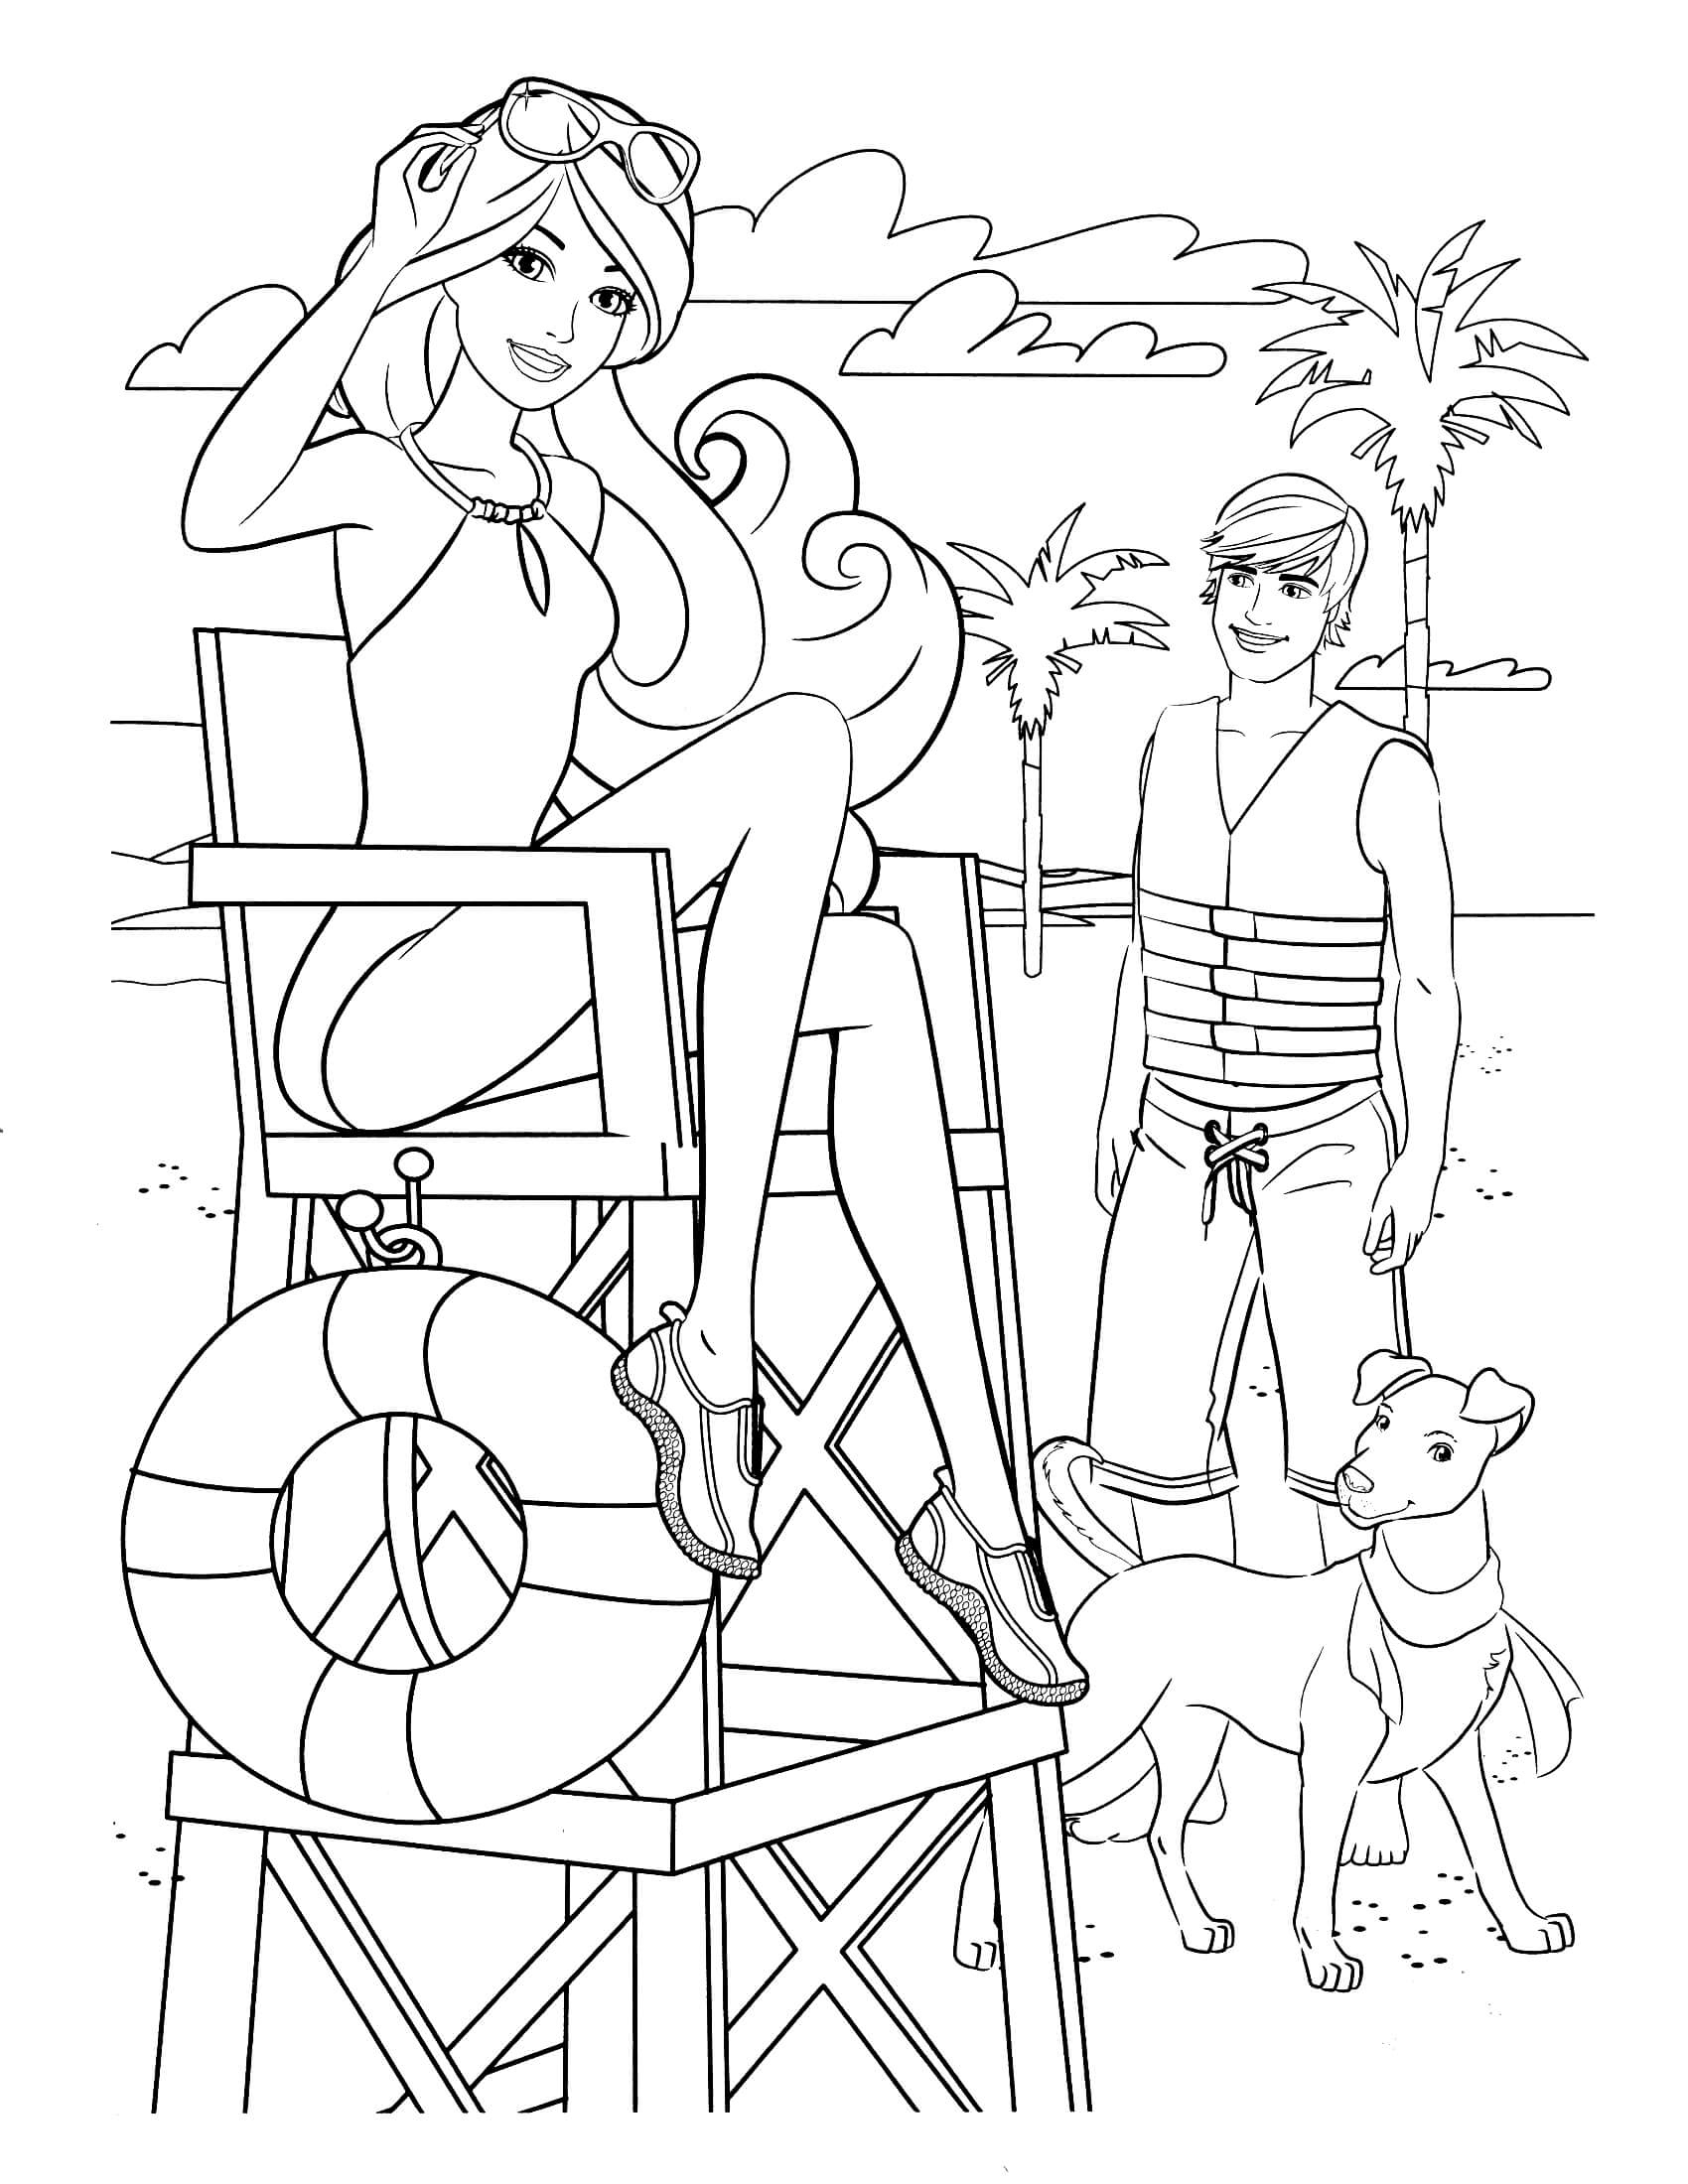 barbie dream house coloring pages dream house coloring pages at getcoloringscom free coloring barbie pages house dream